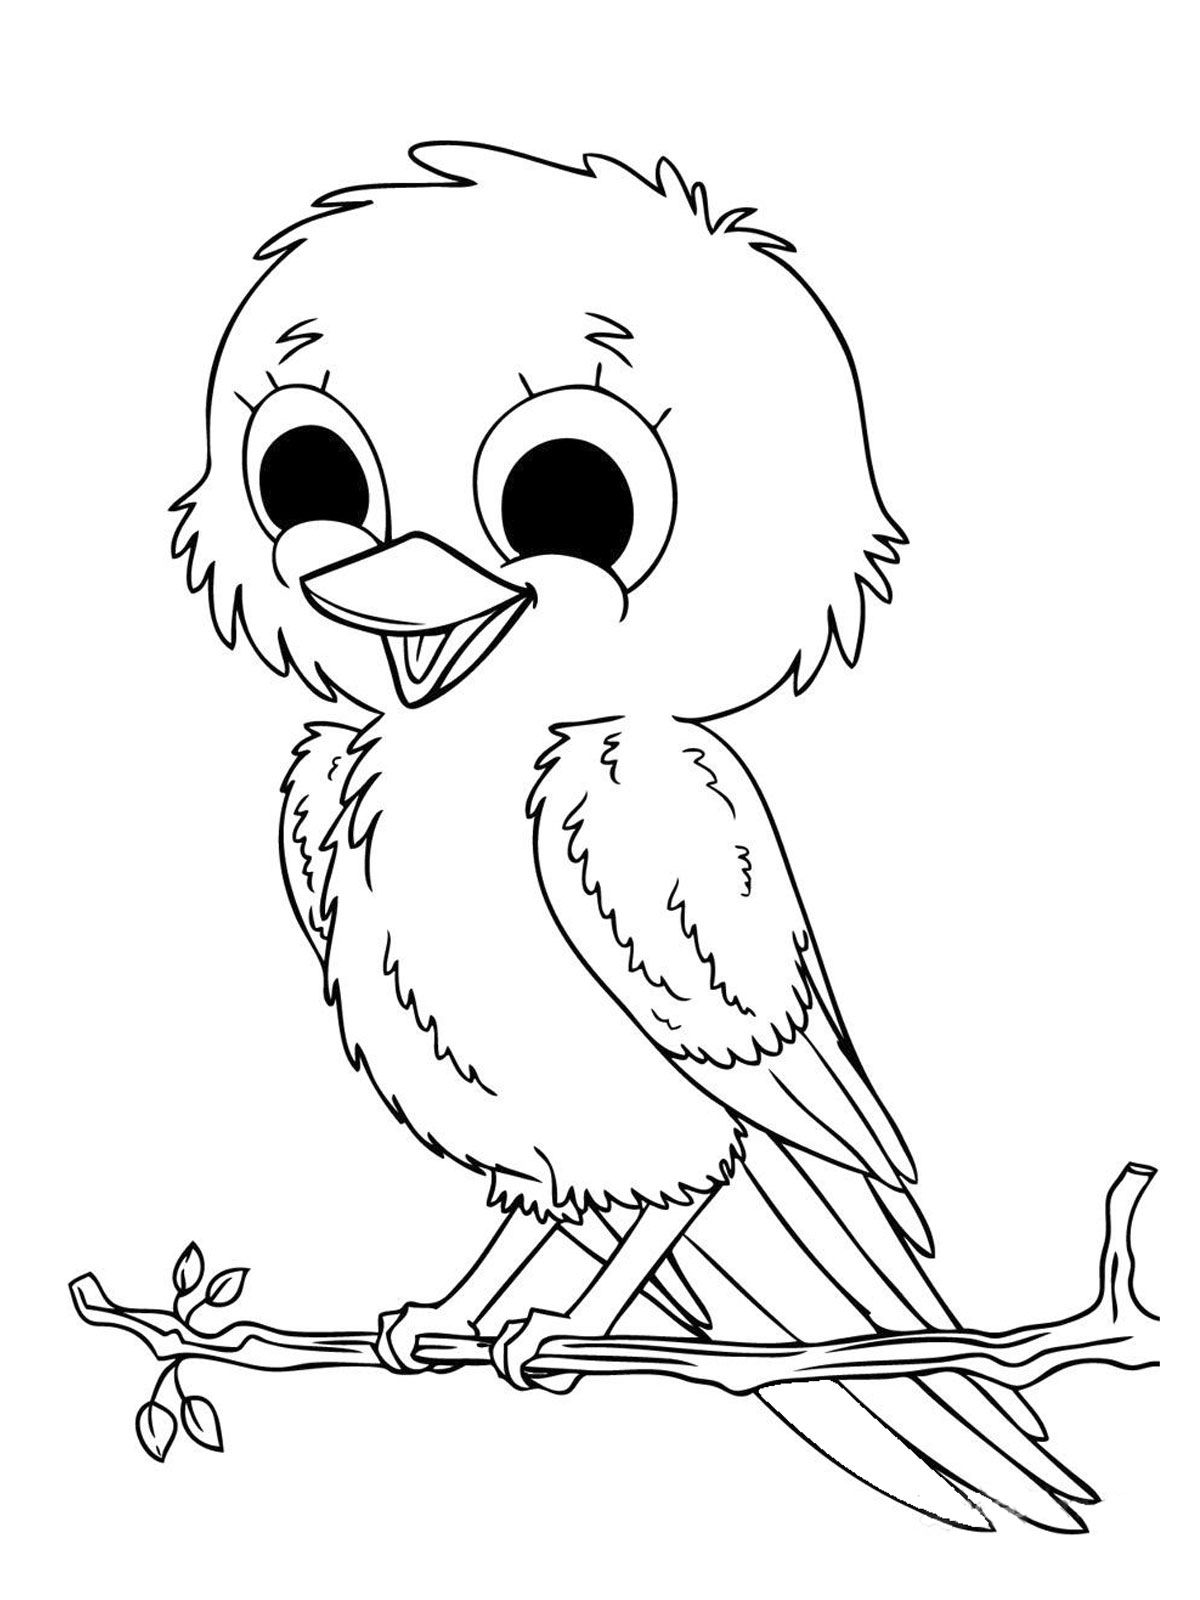 Preschool coloring games online free - Pictures Baby Sparrow Birds Coloring Pages Bird Coloring Pages Kidsdrawing Free Coloring Pages Online